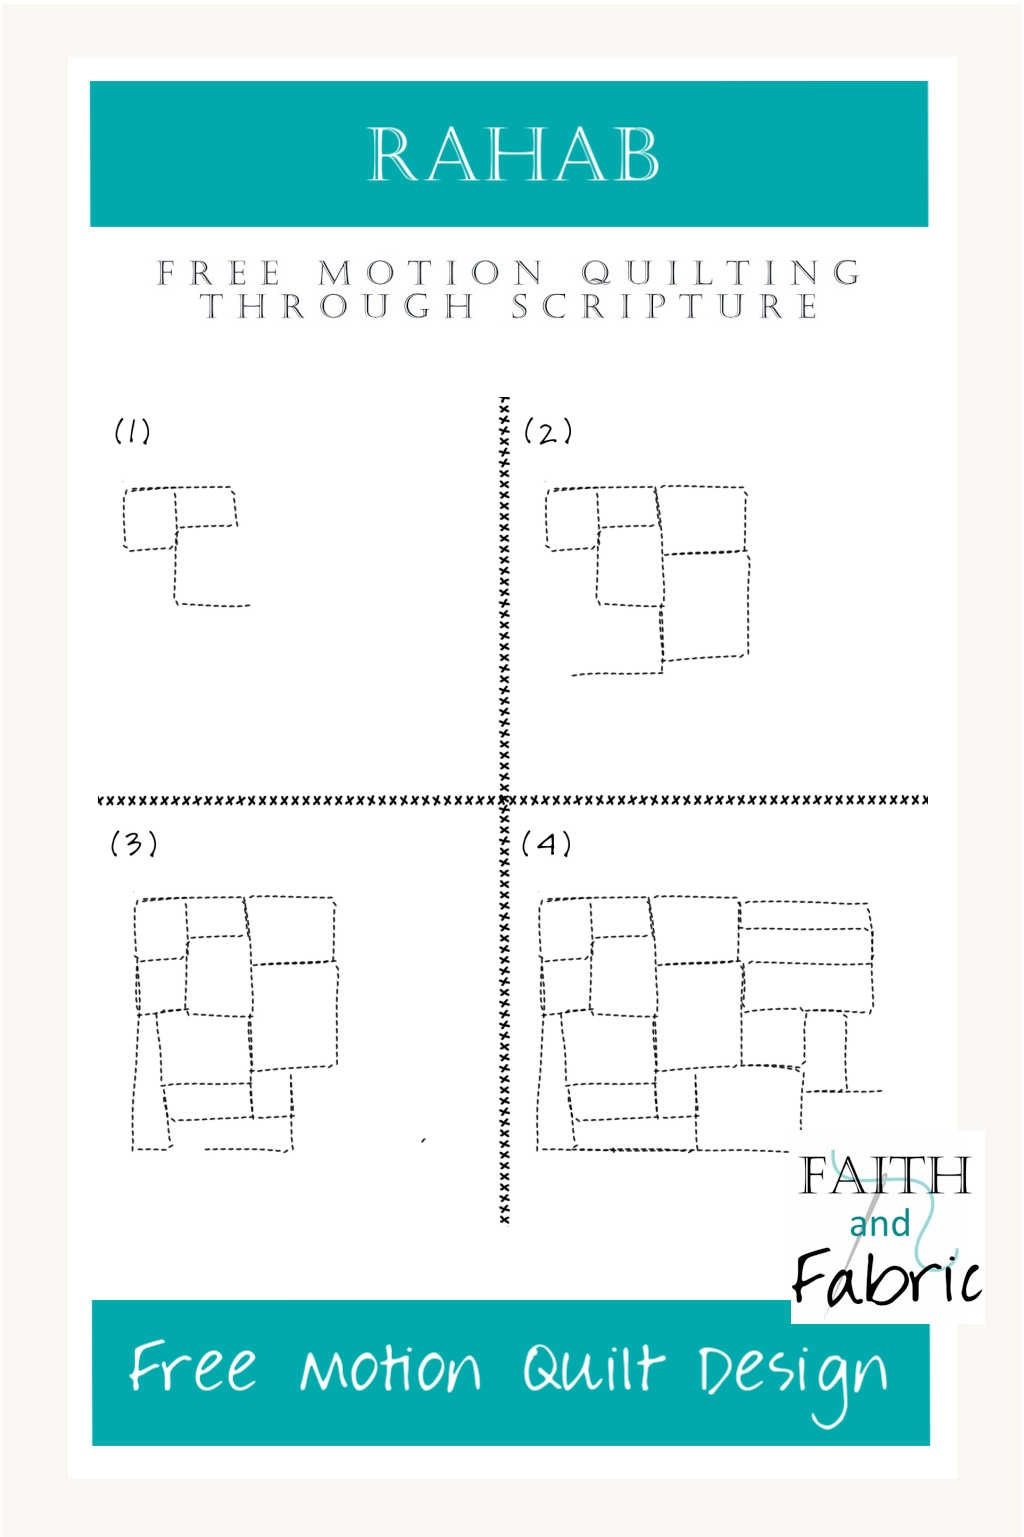 Learn to free motion quilt with faith-inspired designs! This design, inspired by the brick walls of Jericho, celebrates the strength of Rahab.